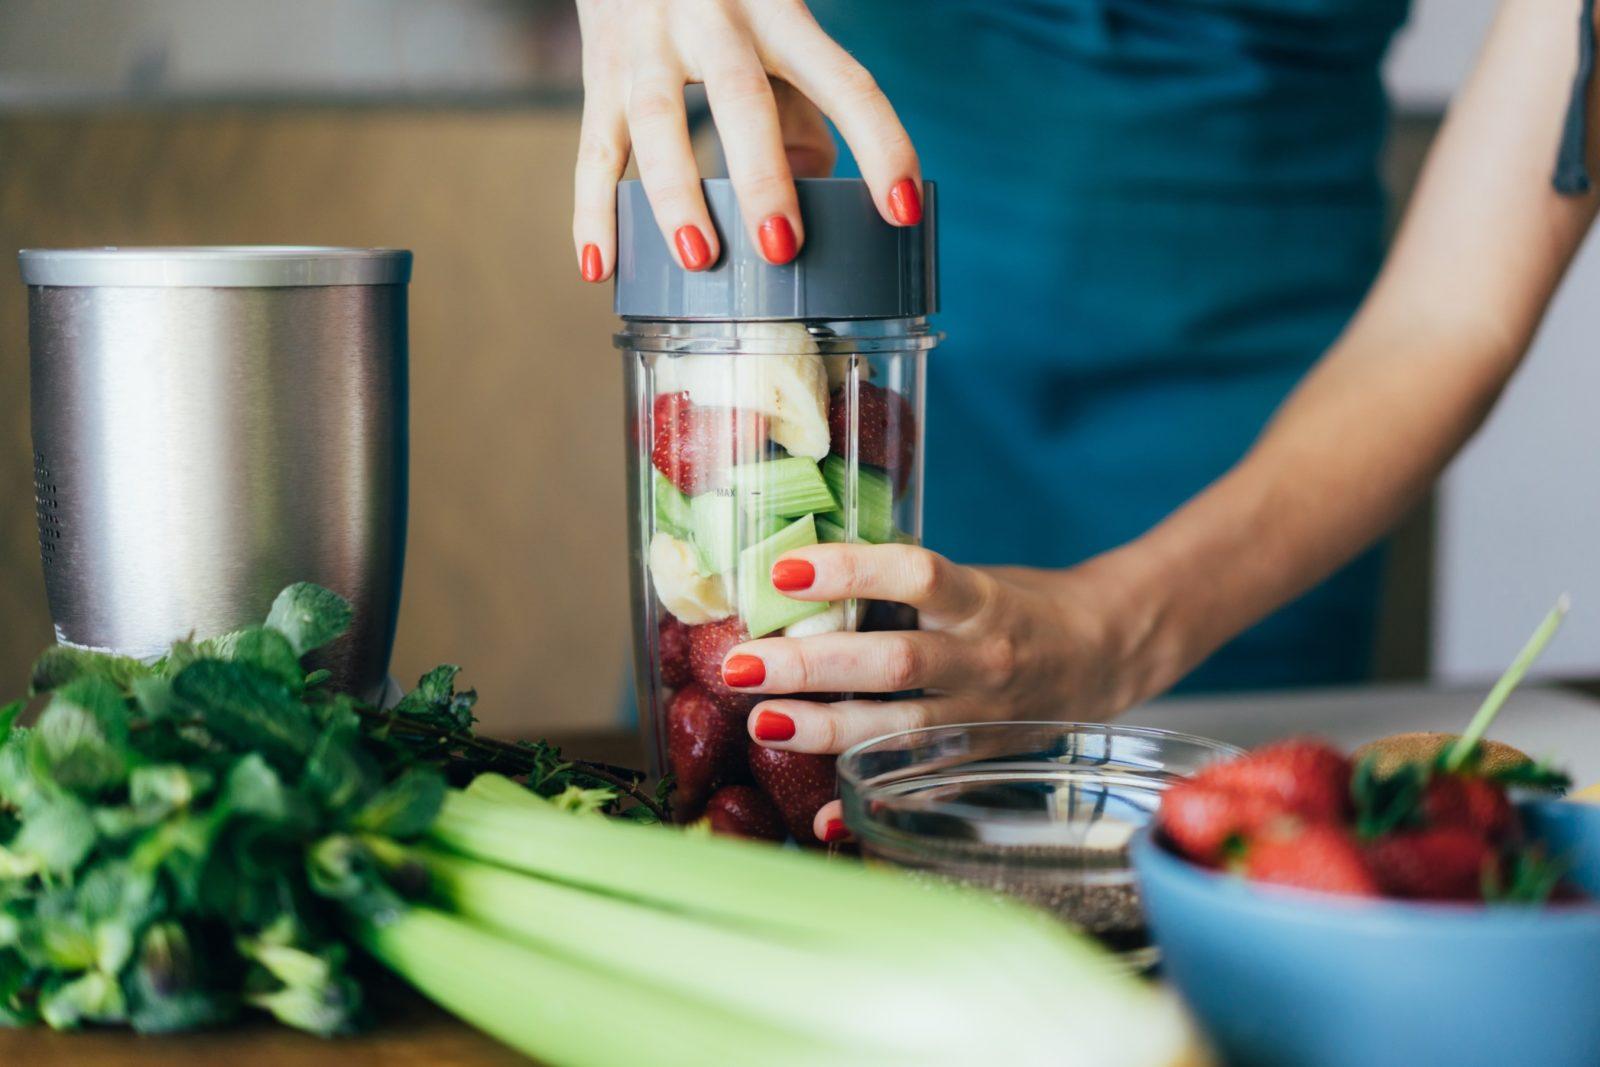 8 Useful Kitchen Gadgets to Make Life Easier